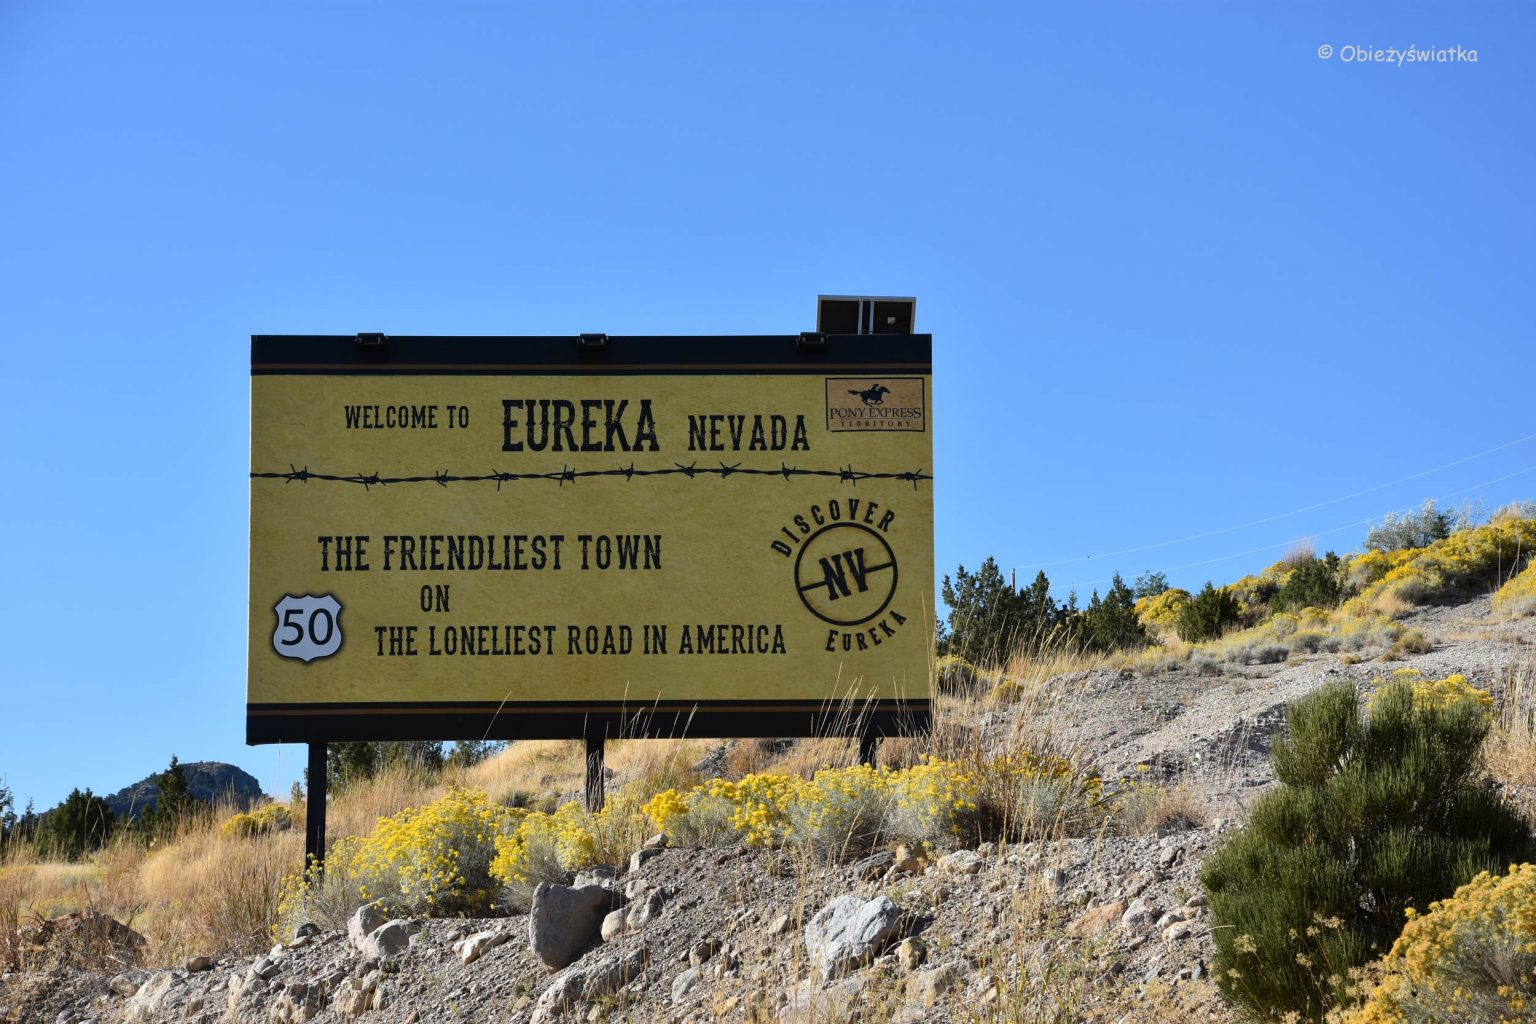 Welcome to Eureka in Nevada